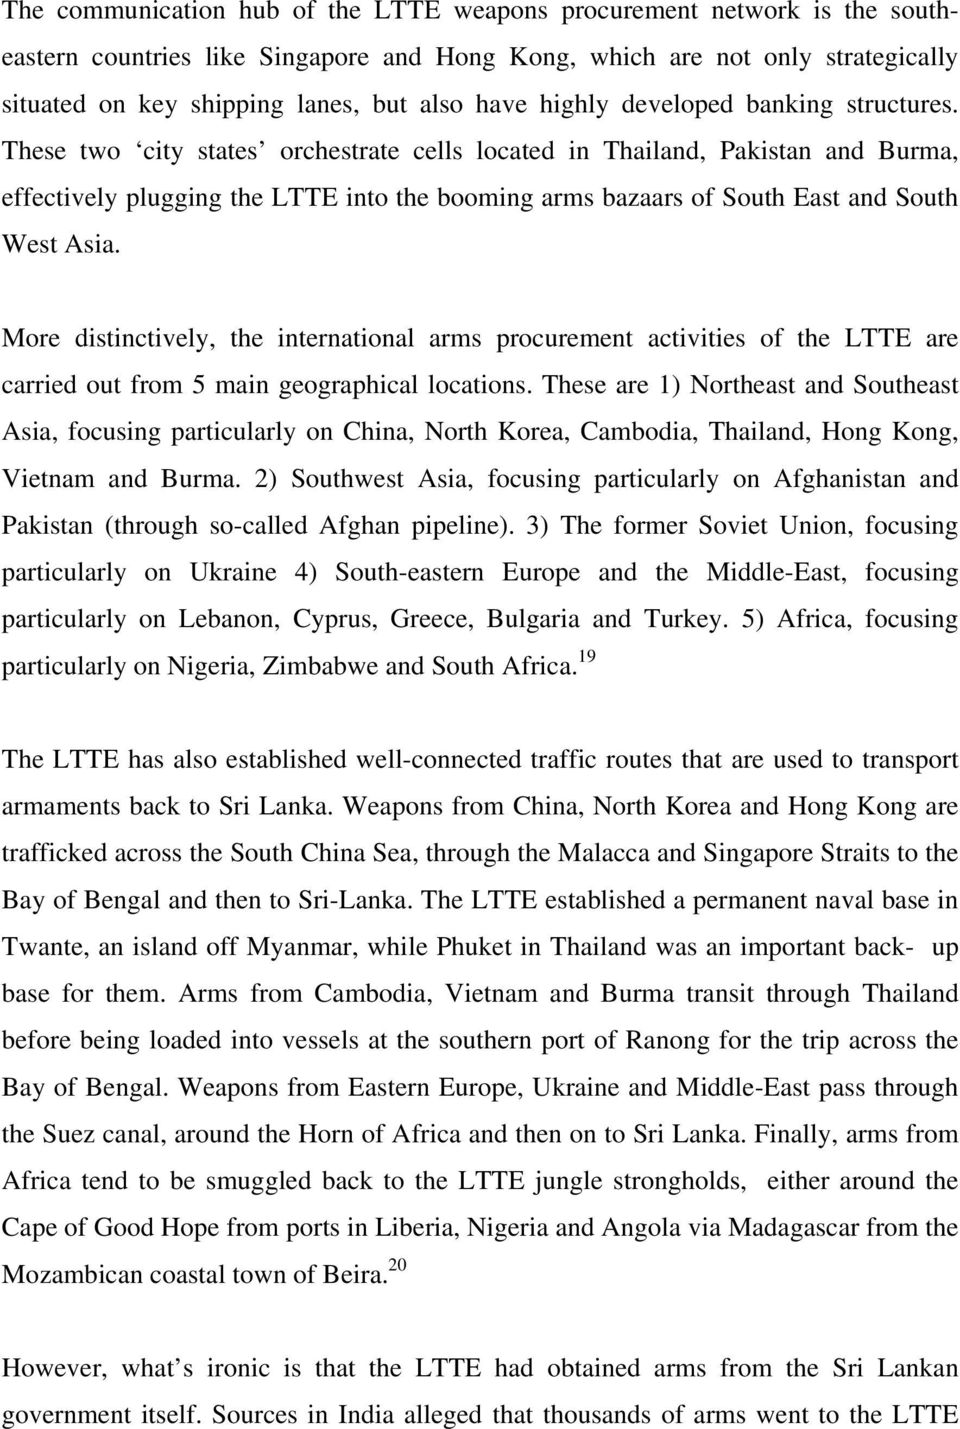 These two city states orchestrate cells located in Thailand, Pakistan and Burma, effectively plugging the LTTE into the booming arms bazaars of South East and South West Asia.